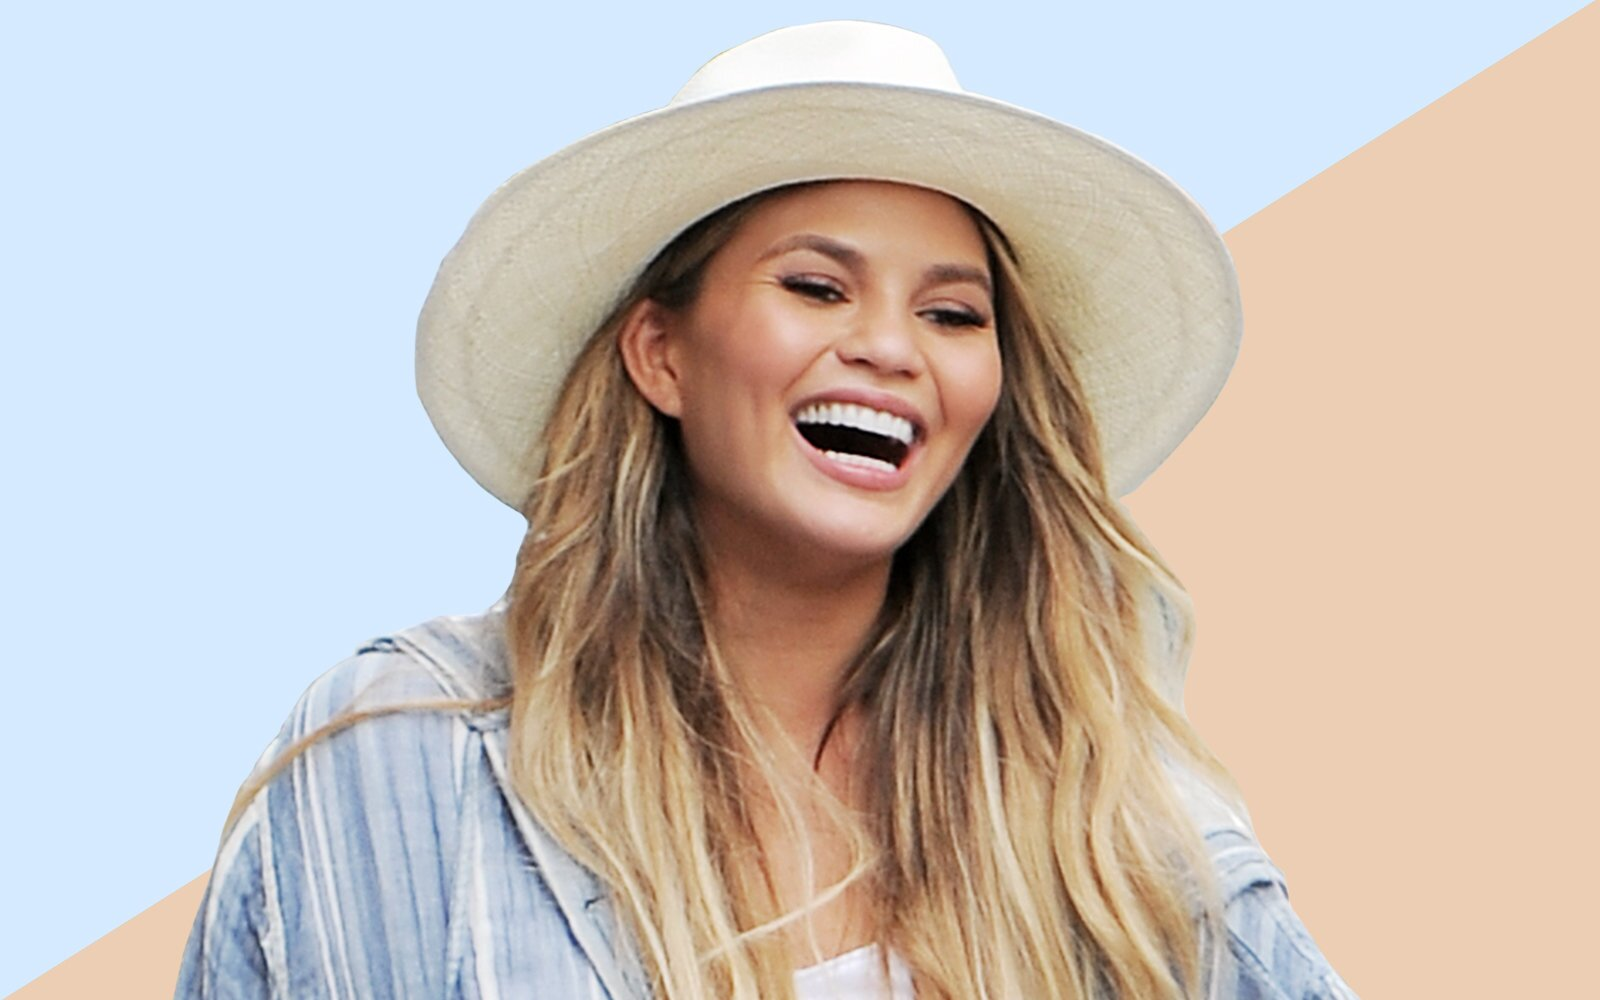 aa7dae7417477 5 Perfect Summer Hats From Chrissy Teigen s Favorite Brand